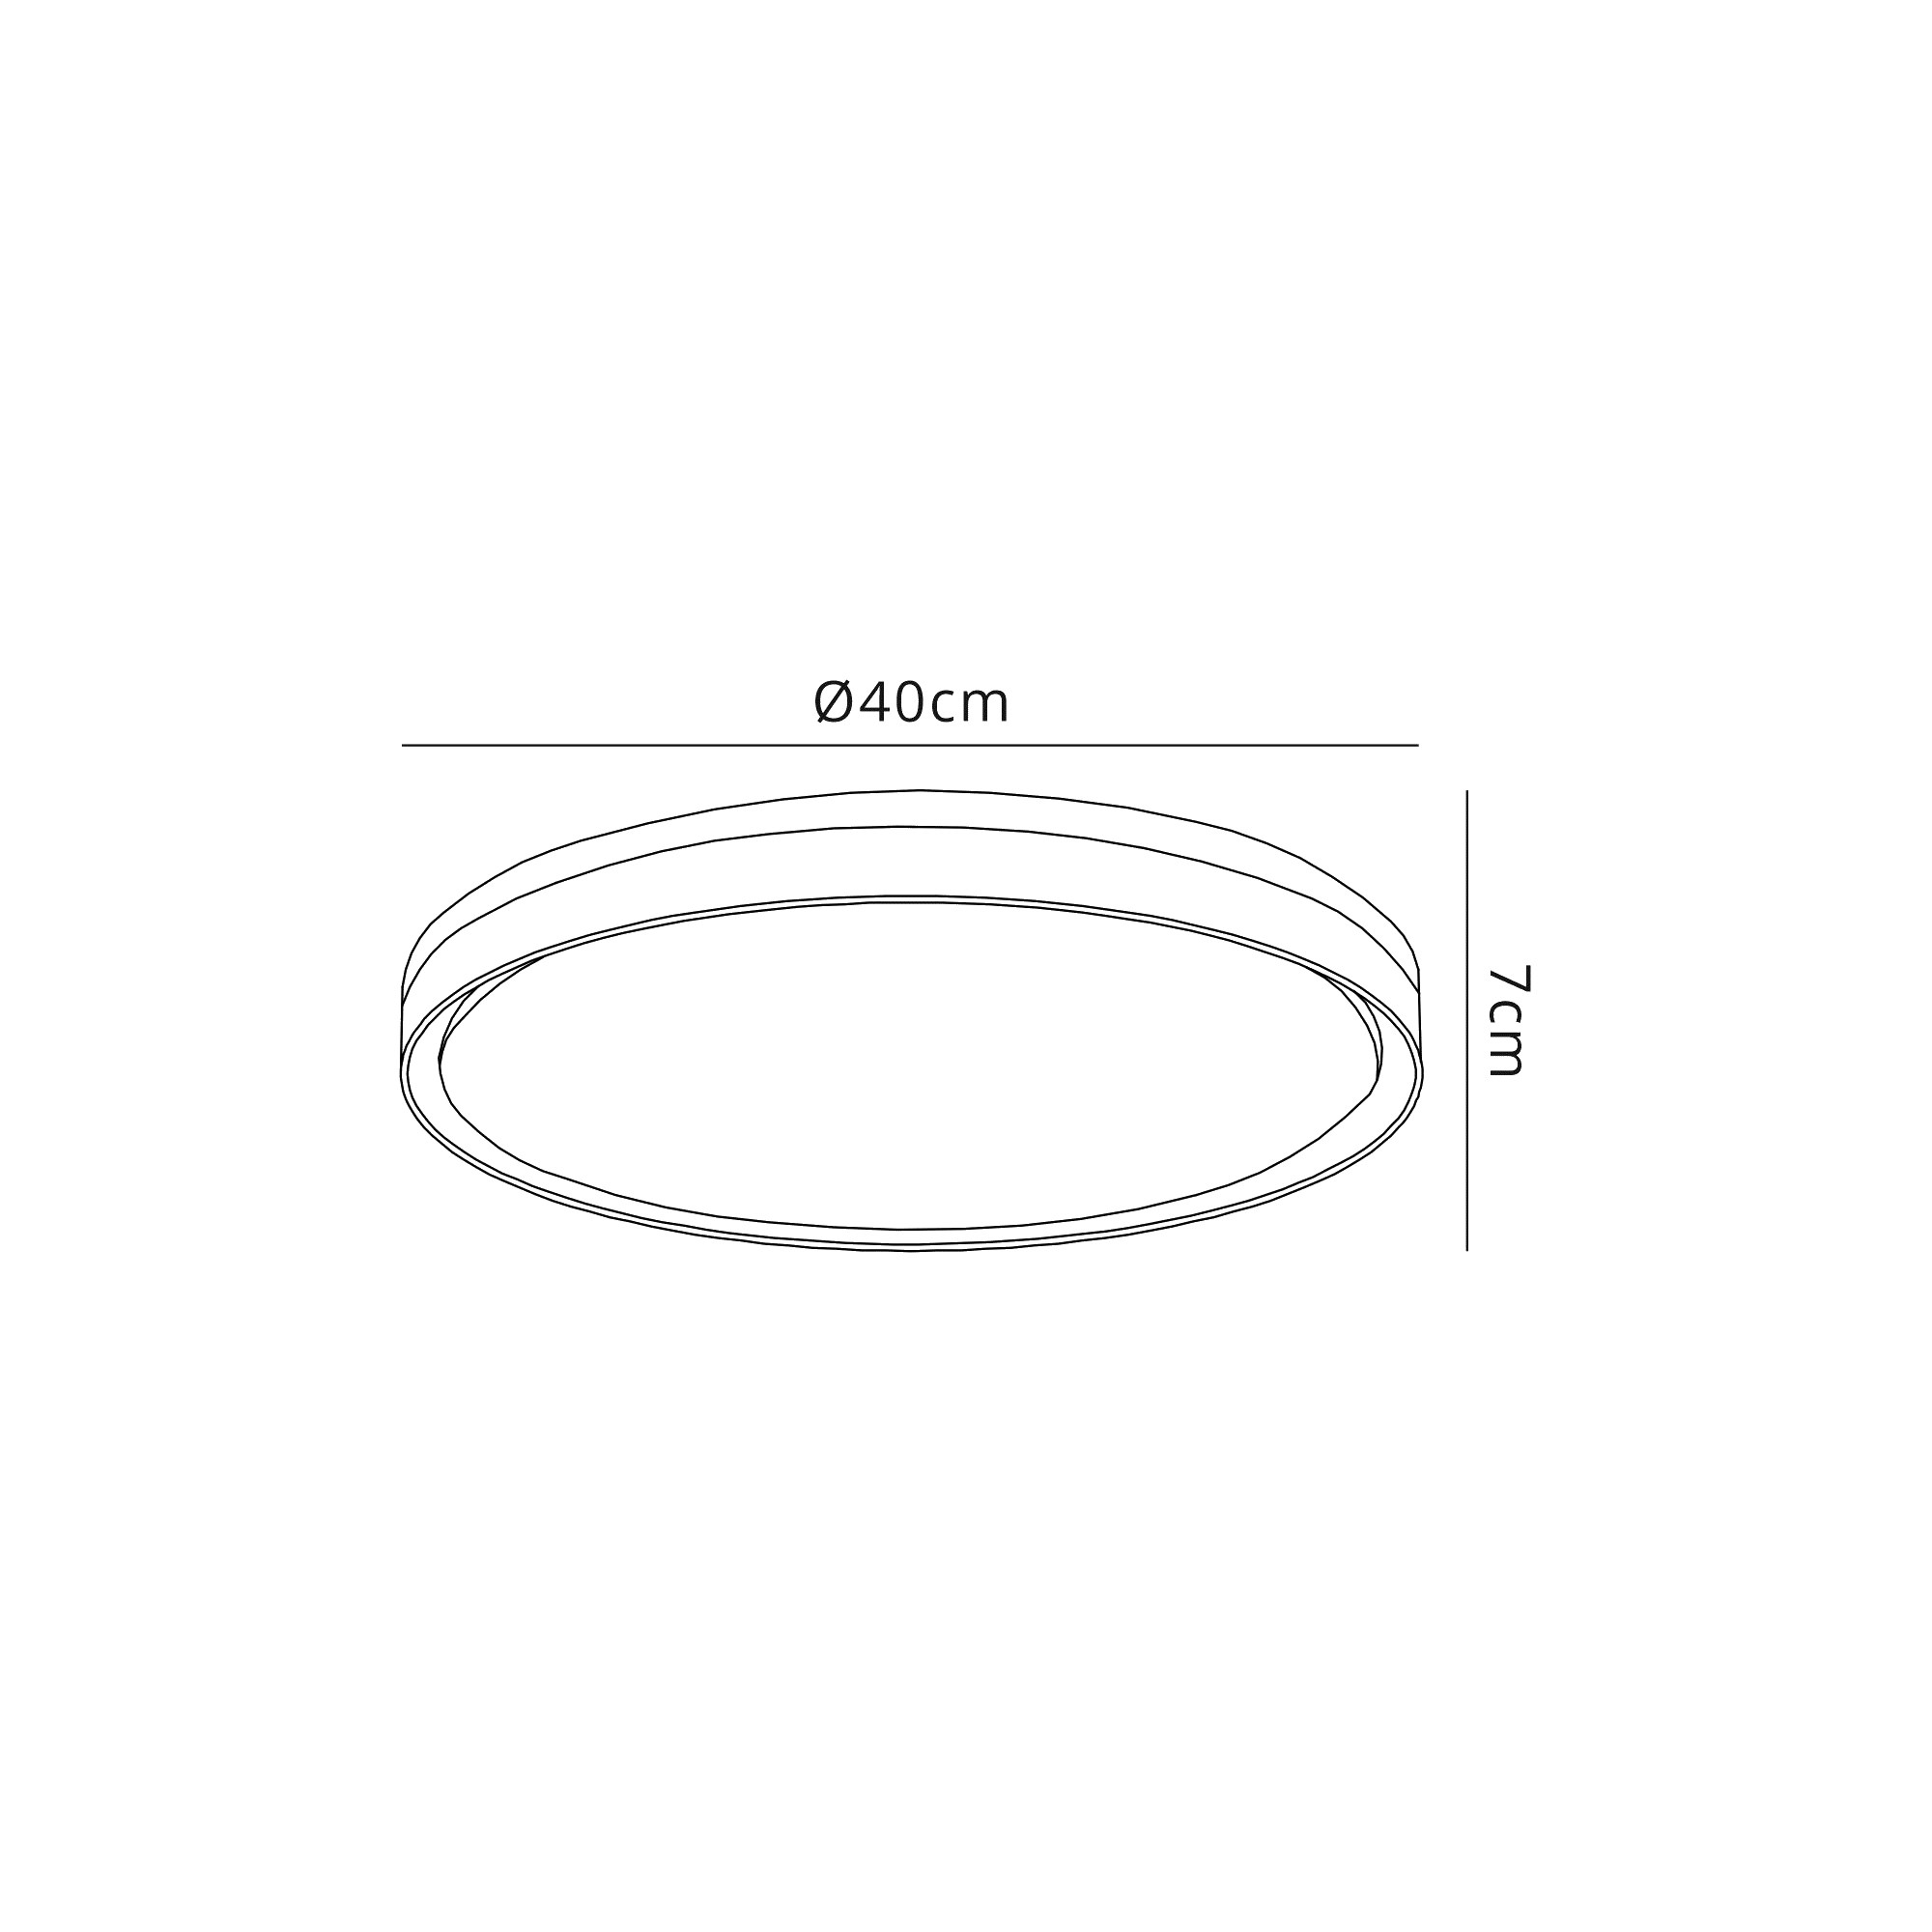 Ceiling 39cm, 1 x 24W LED, 3 Step-Dimmable, 3000K, 1000lm, IP44, Silver/White Acrylic, 3yrs Warranty